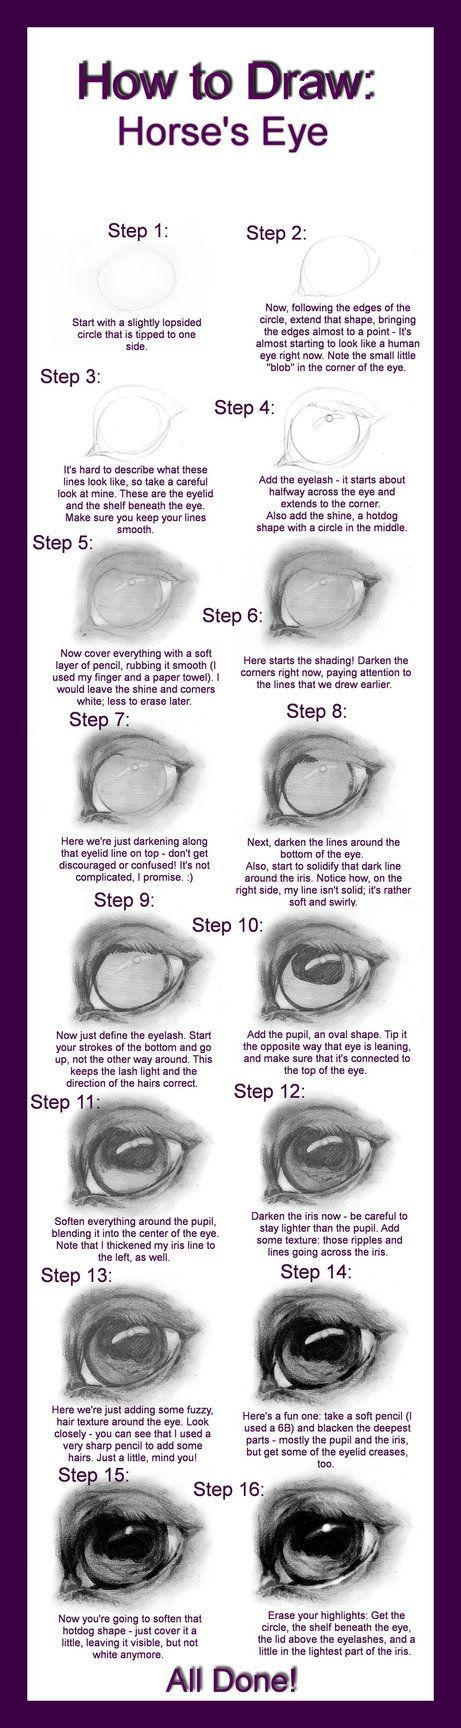 How To Draw: Horse's Eye By Definex On Deviantart